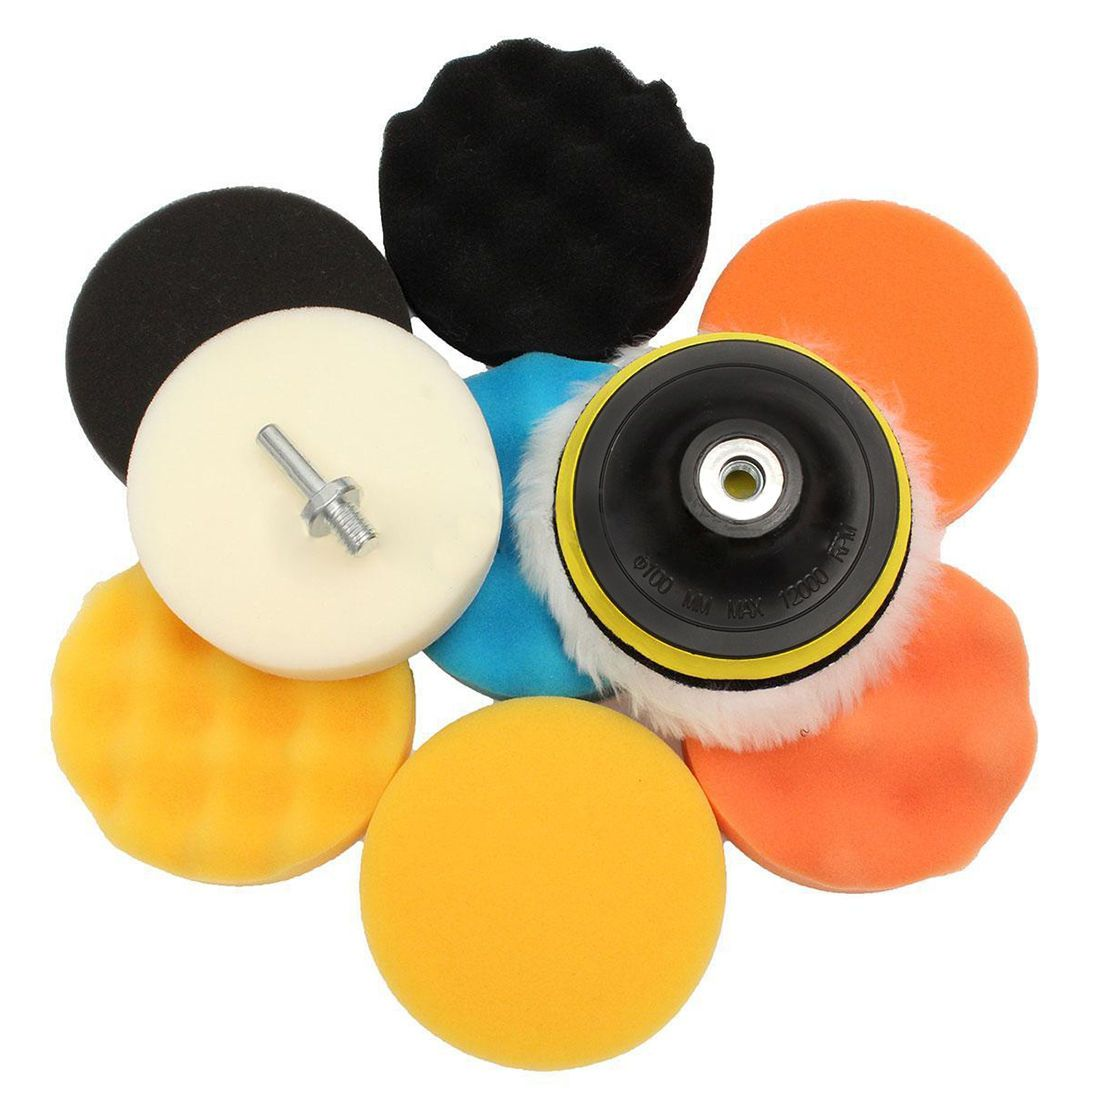 3 Inch For Car Buffing Pad Kit Polishing Wheel Sponge Pad Drill Adapter 11pcs Rapid Heat Dissipation Abrasive Tools